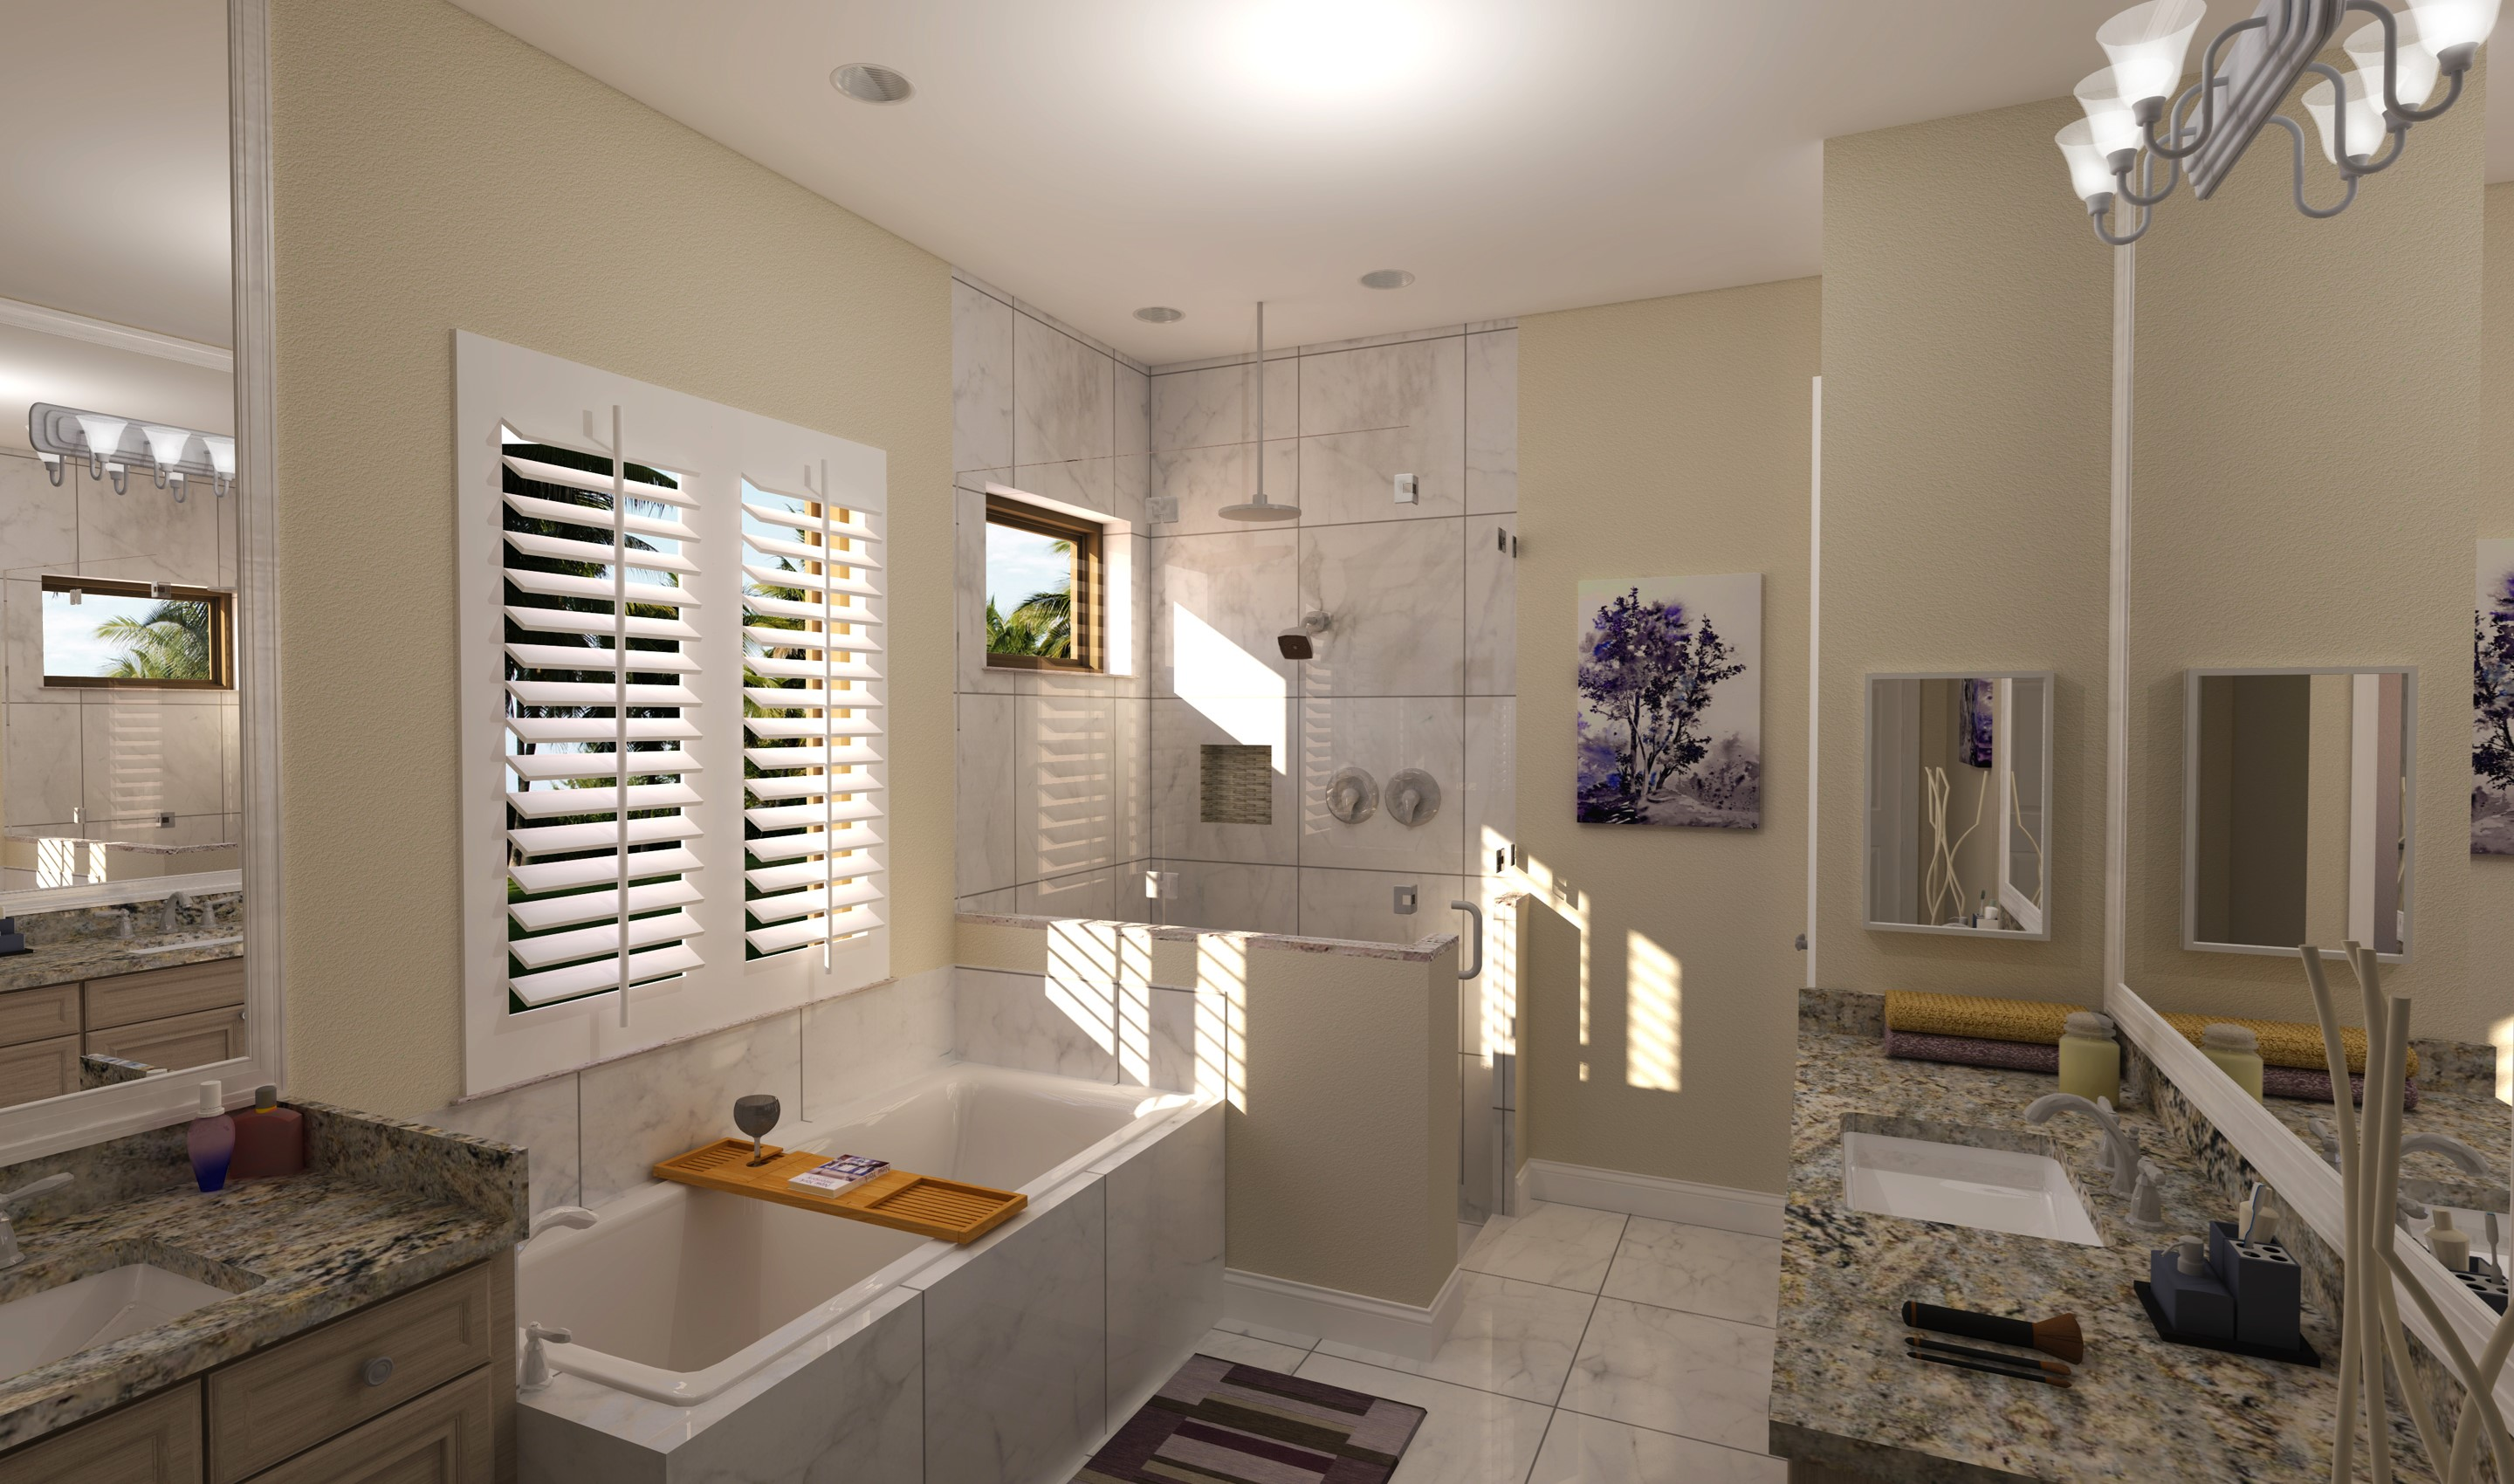 Owner's bath with tub and shower